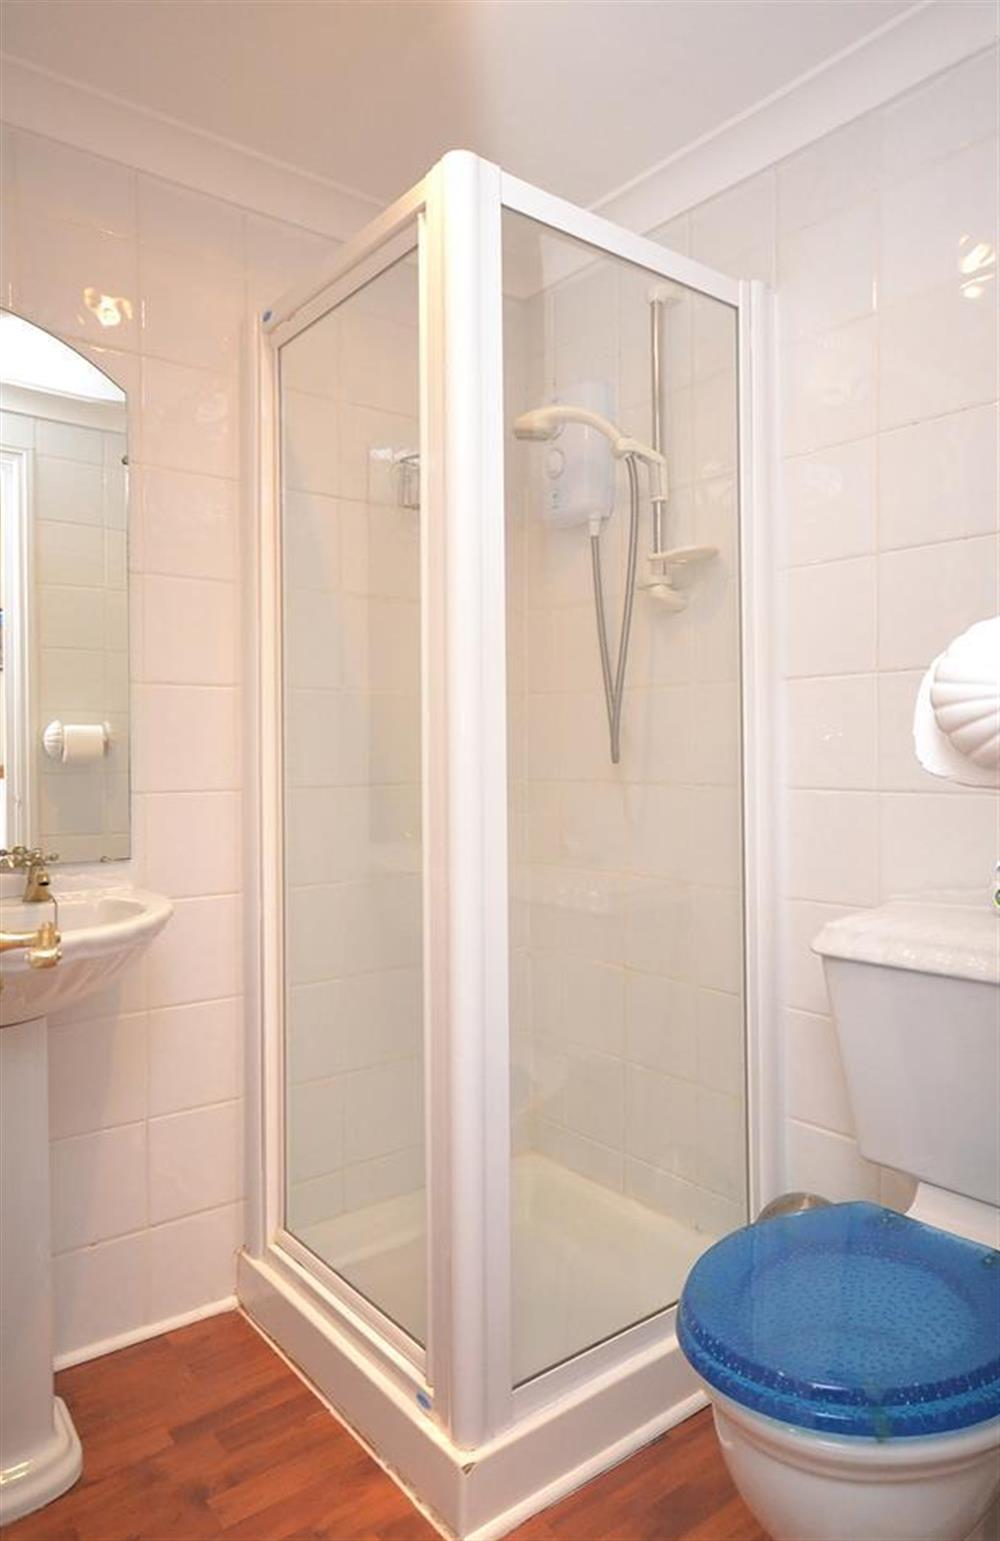 The double room ensuite bathroom at Grants Cottage, Dartmouth